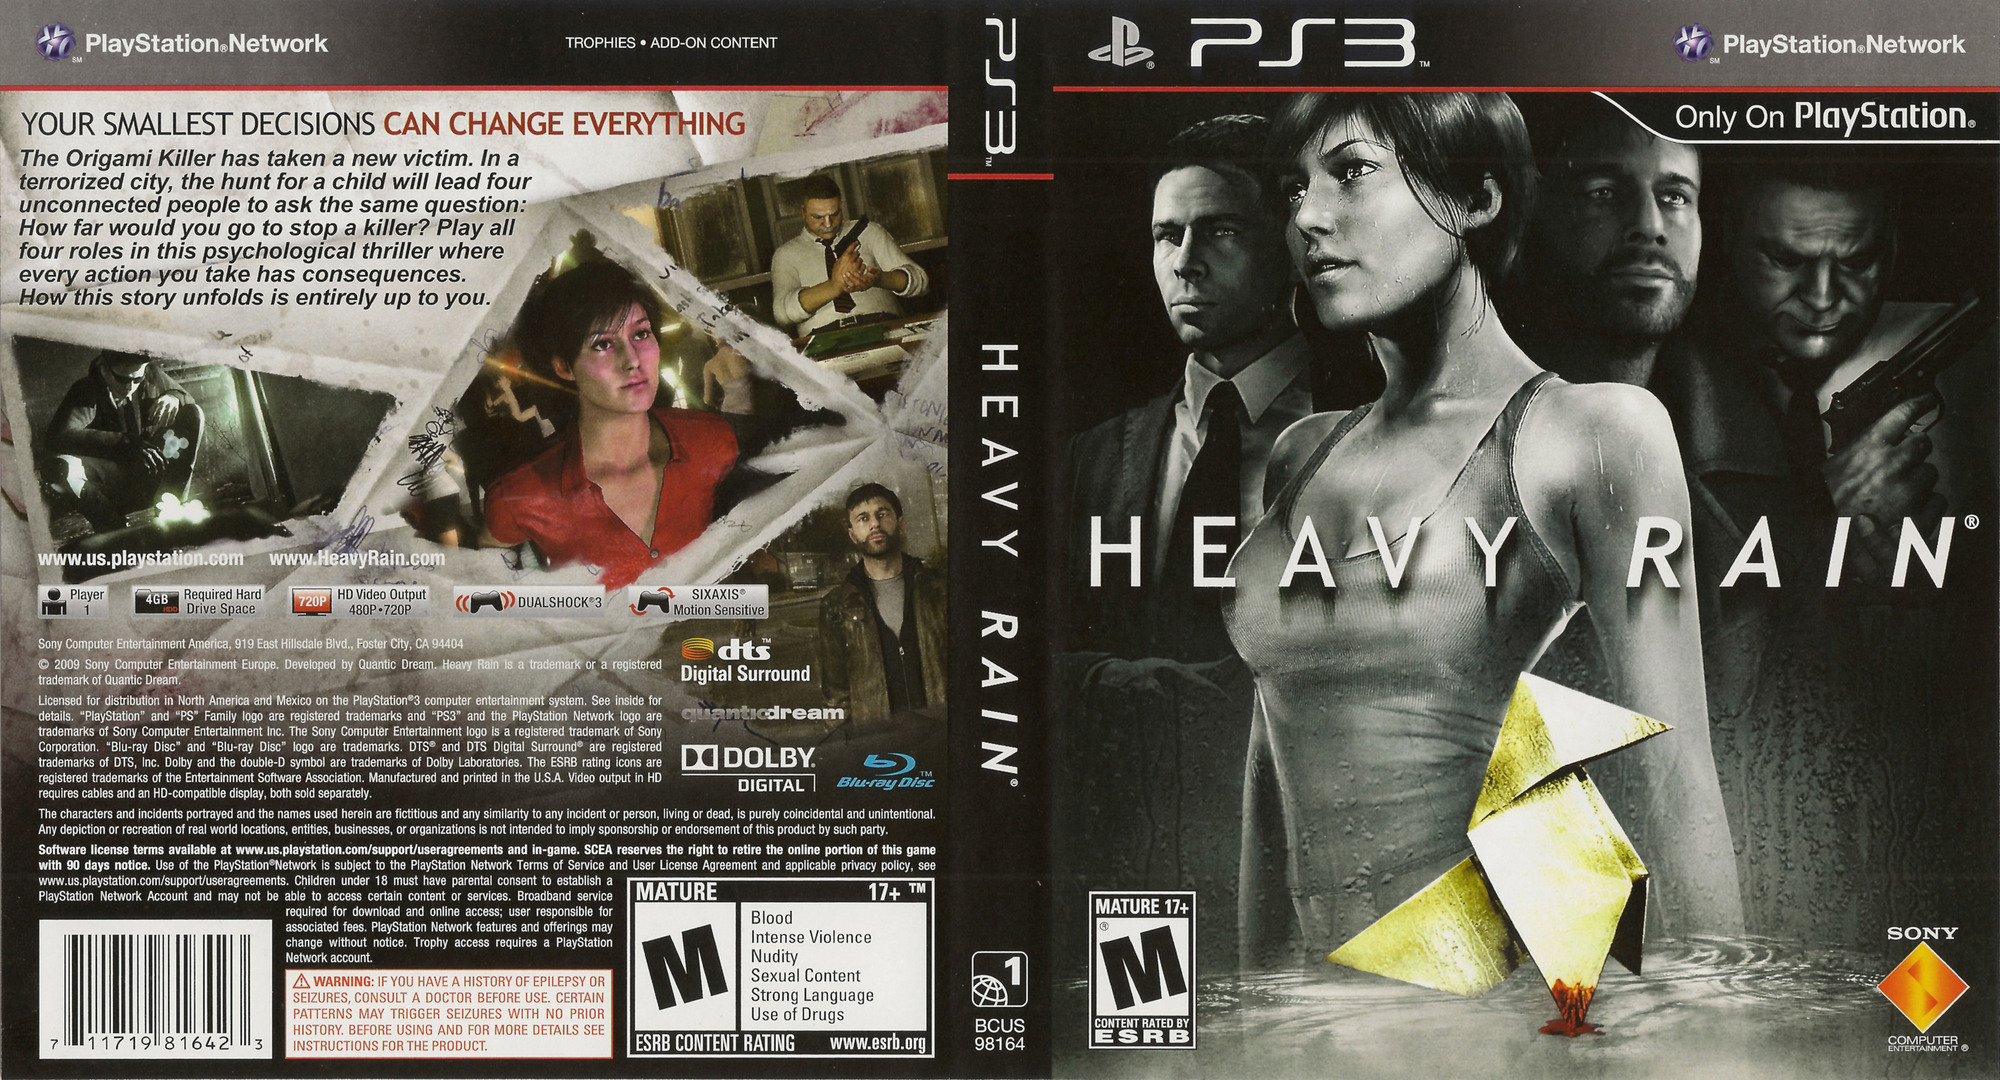 Heavy Rain PS3 coverfullHQ (BCUS98164)